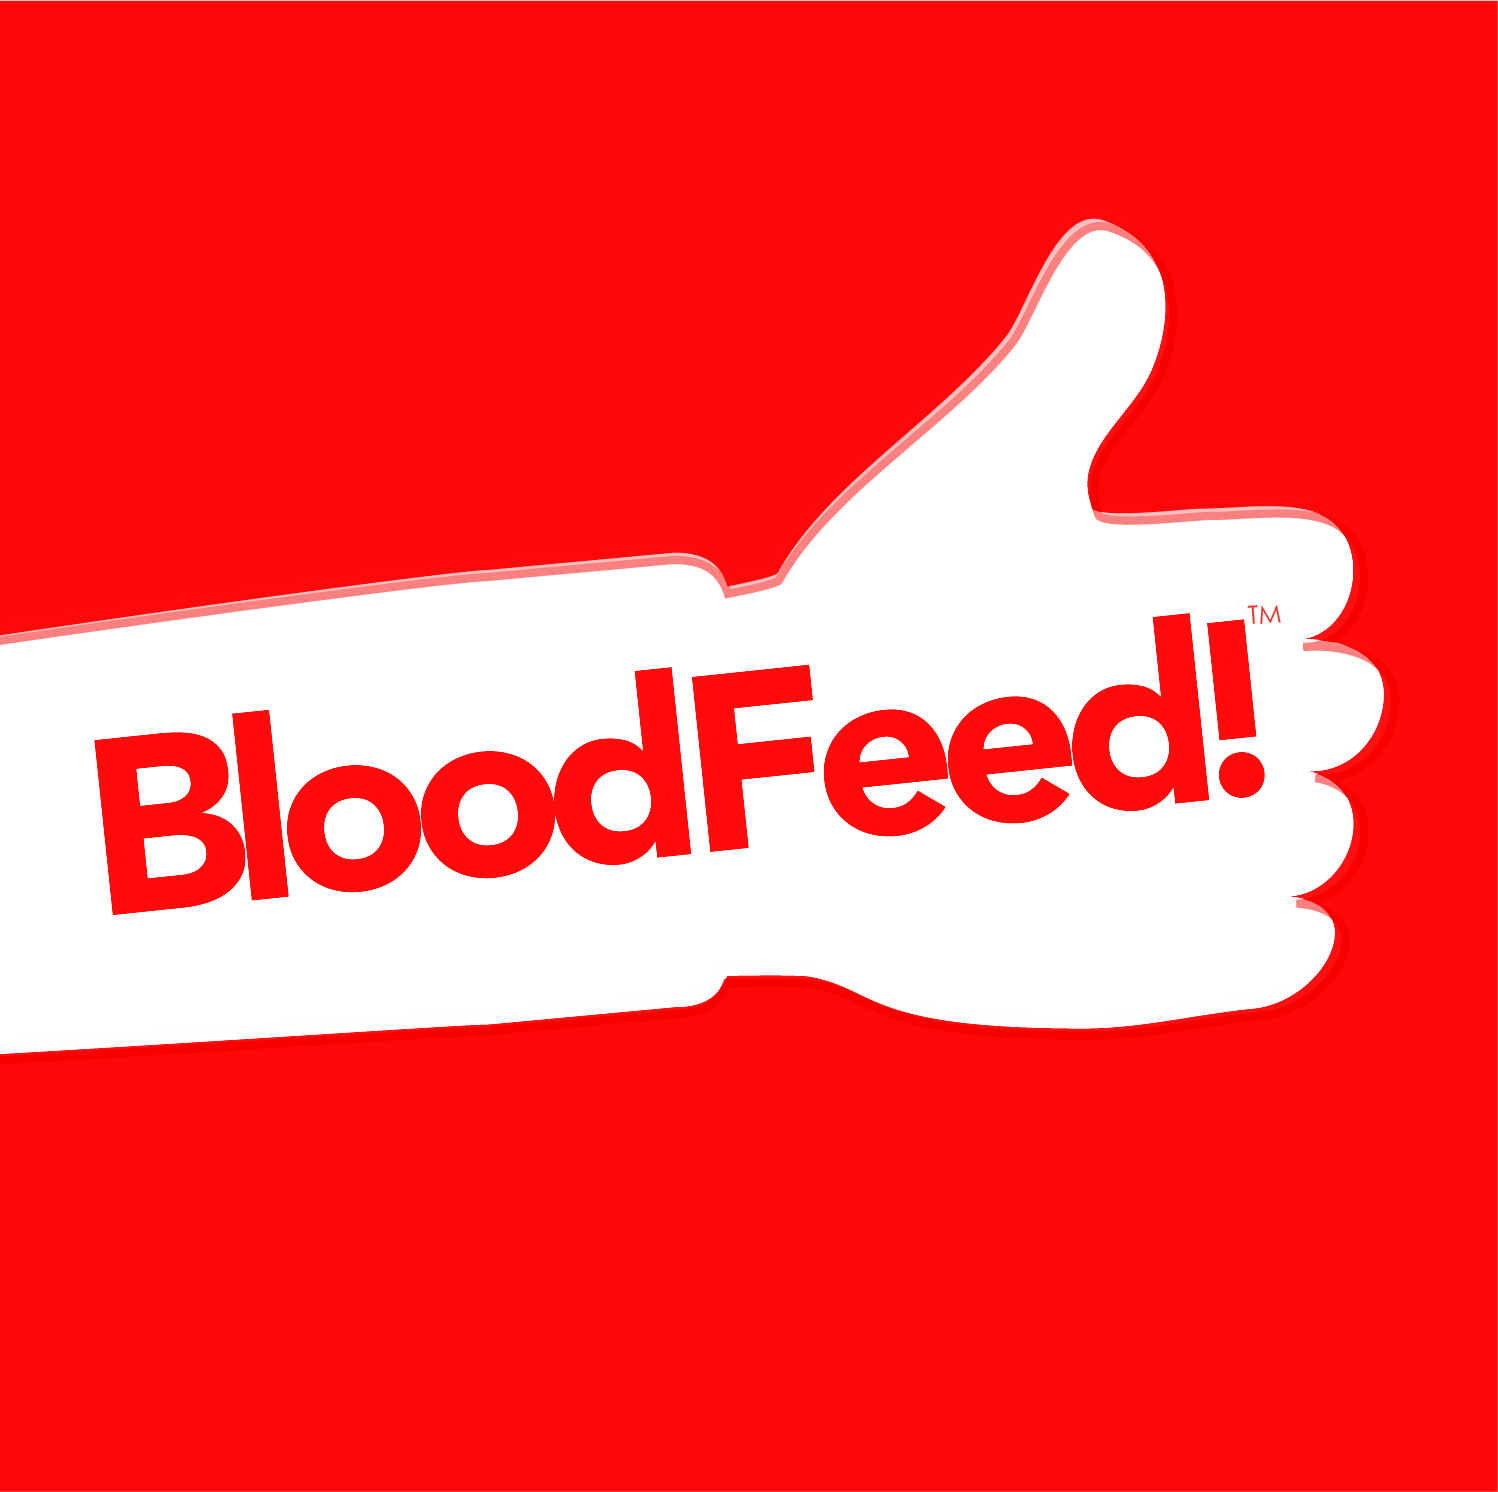 BloodFeed!